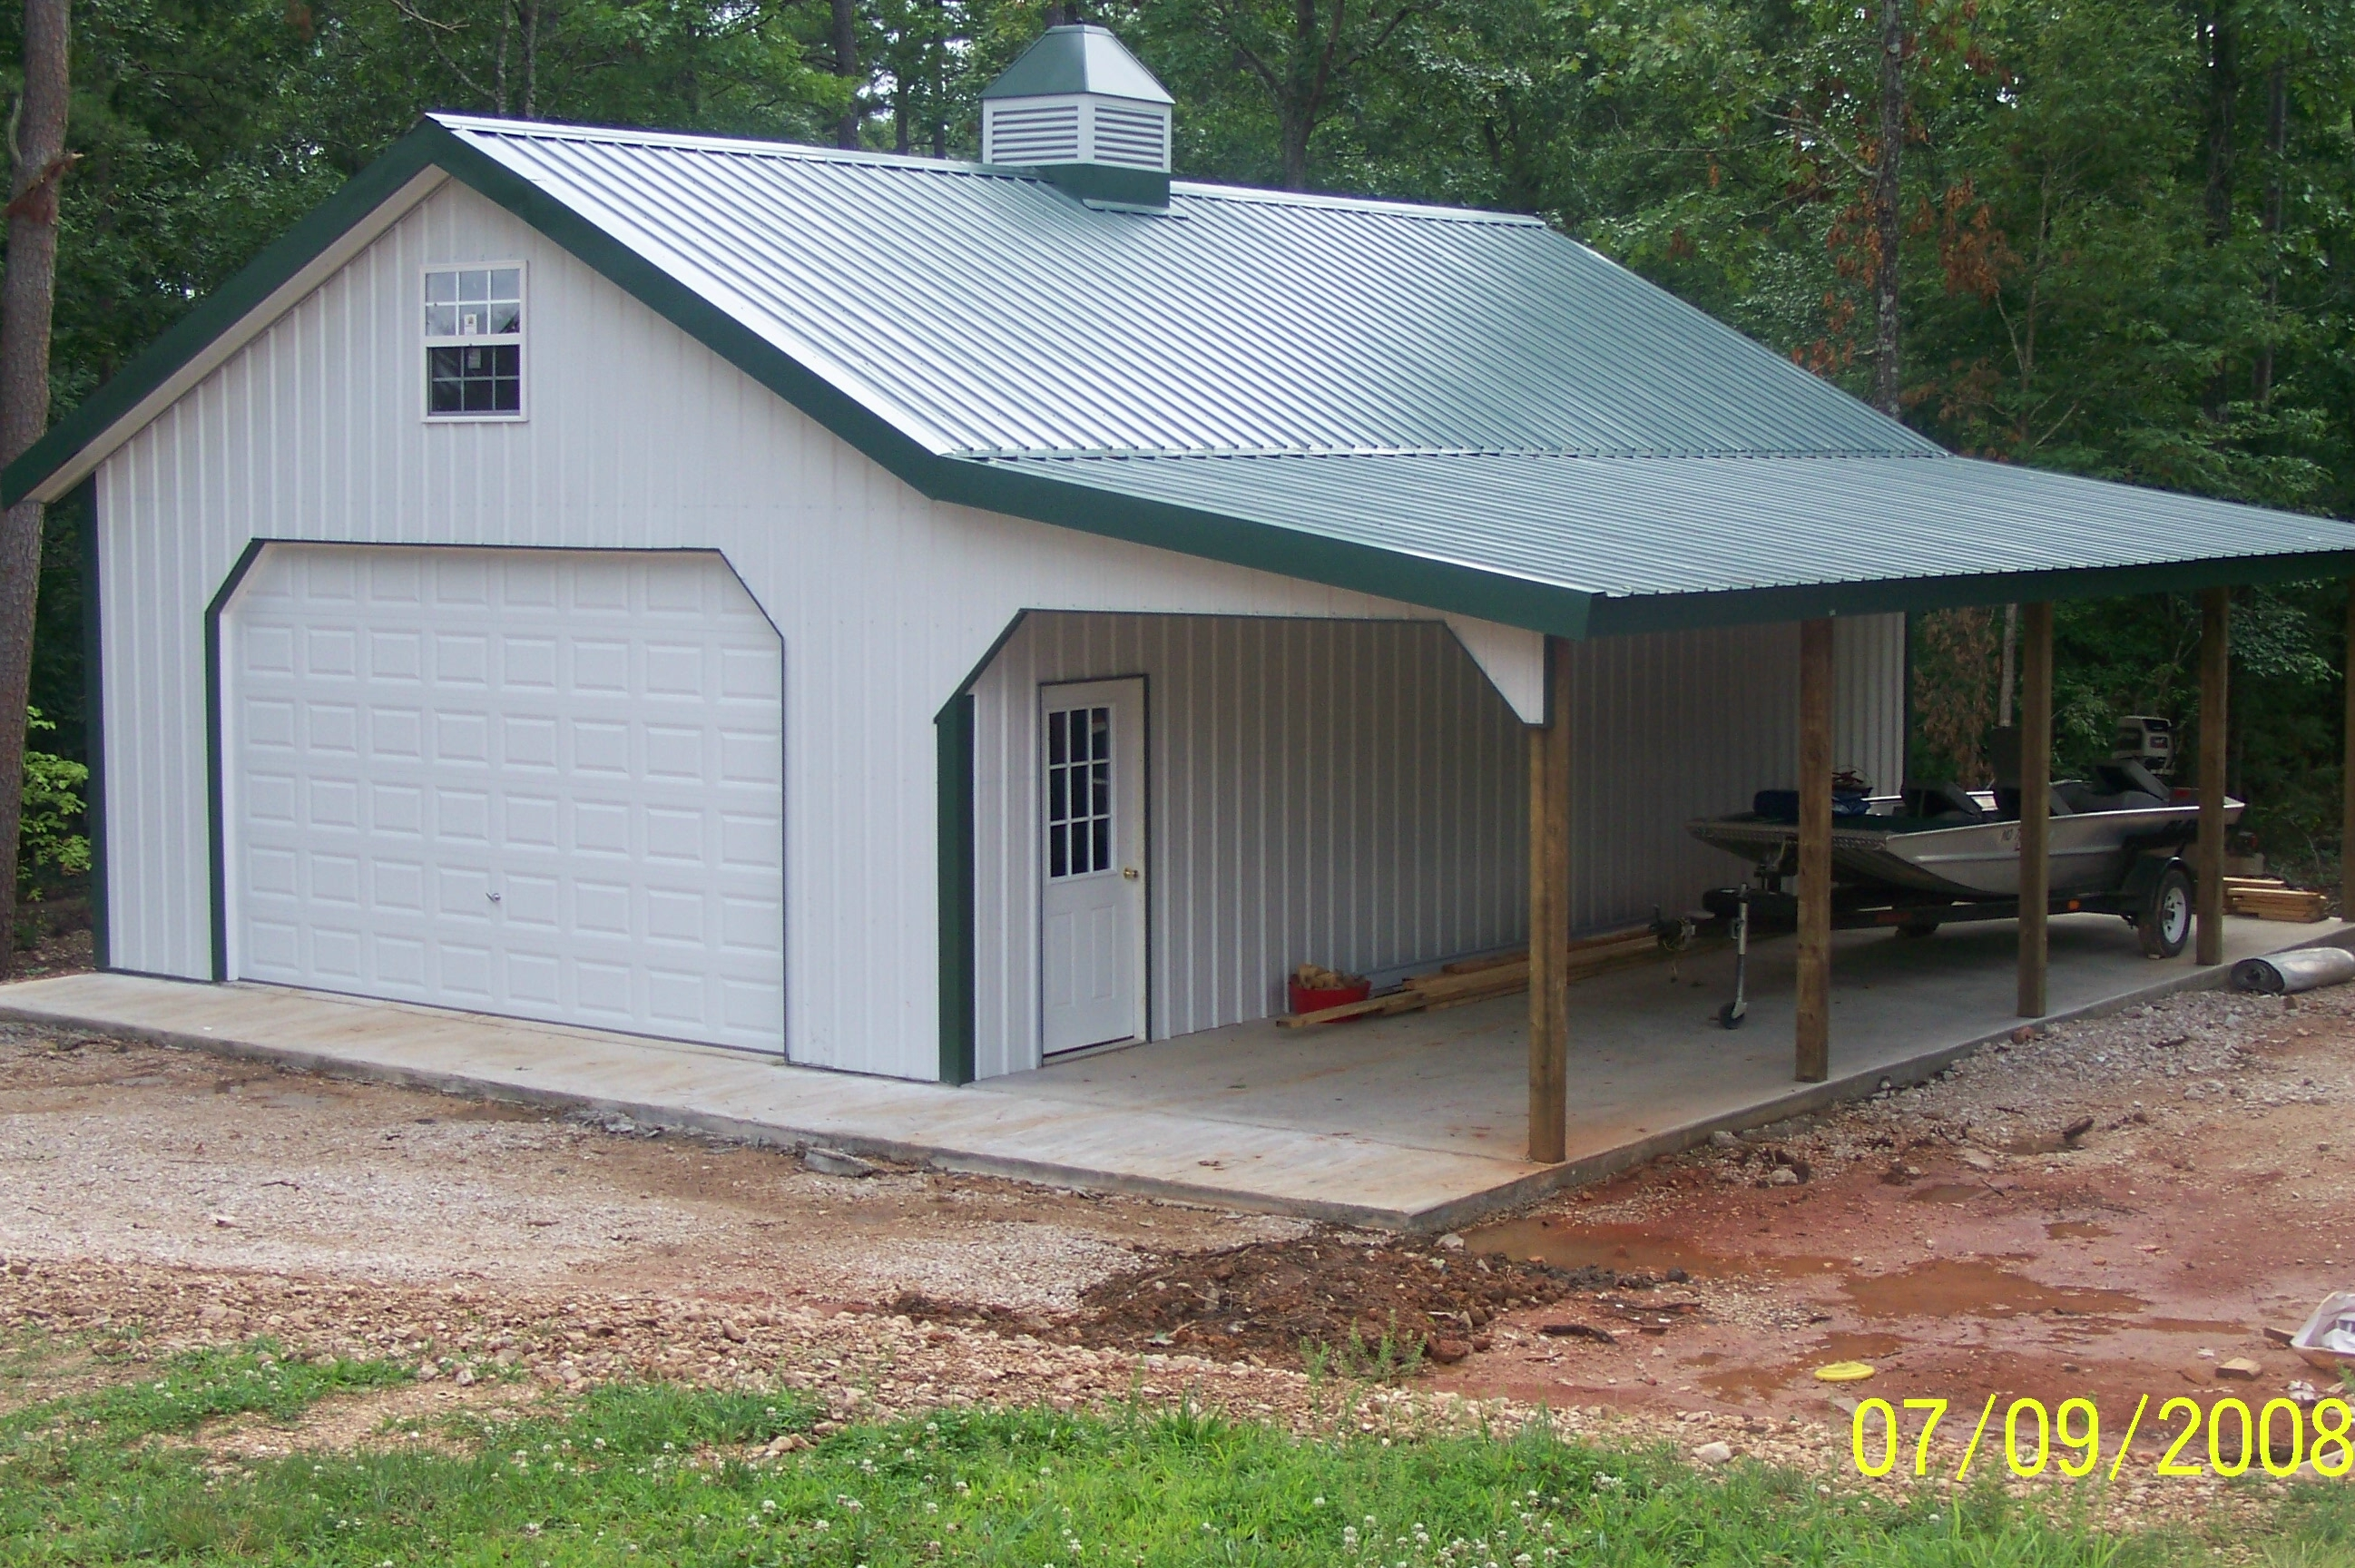 Home ideas Garage barn